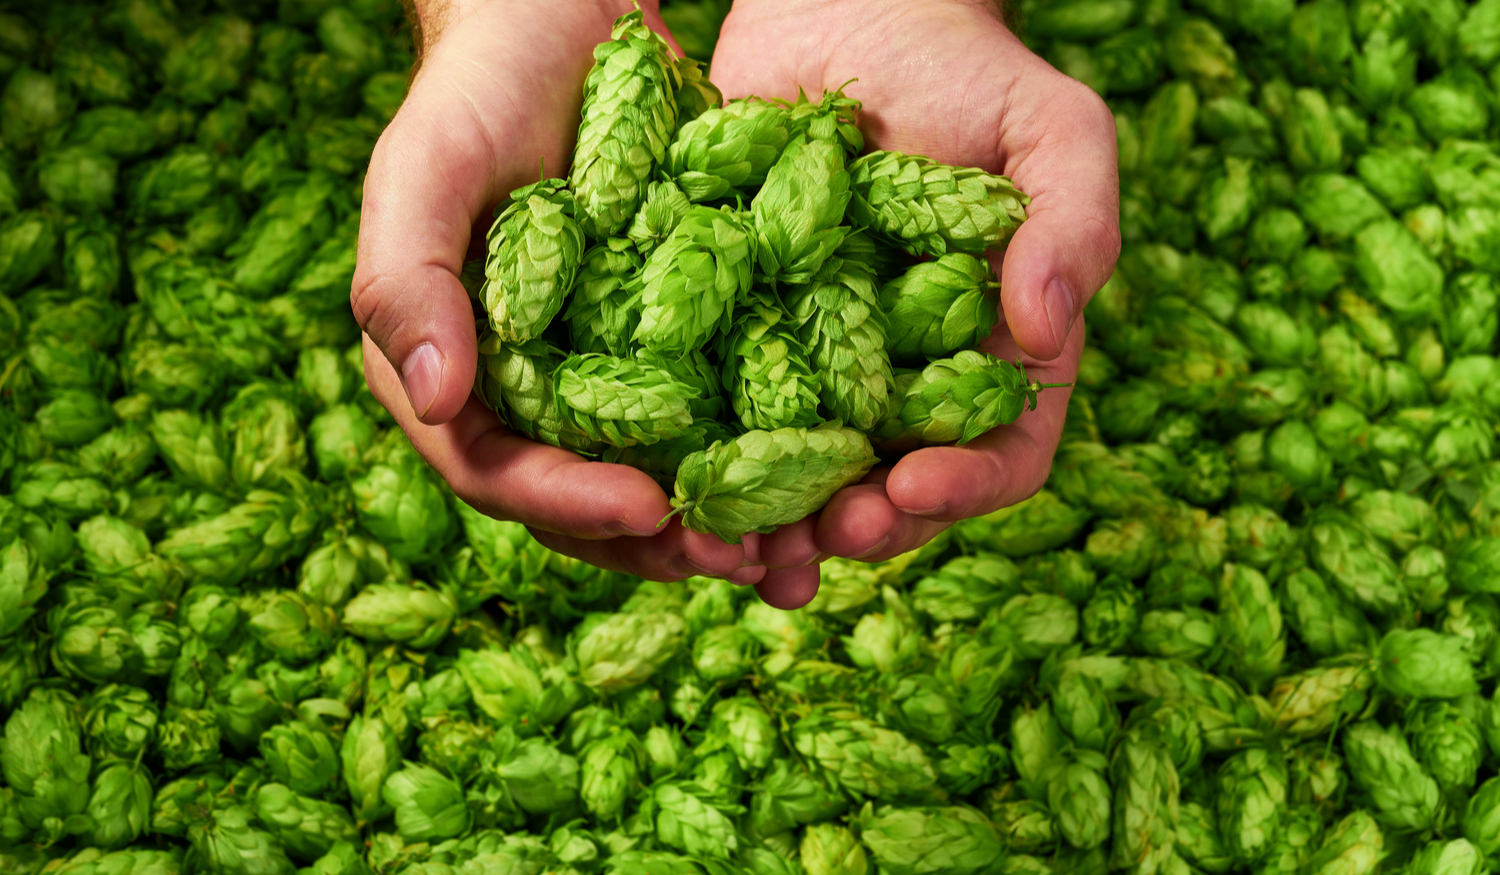 LAND JOURNAL-Blog-Awareness-Beer Hops Brewing A New Alternative Crop for Florida's Farmers -2019-875